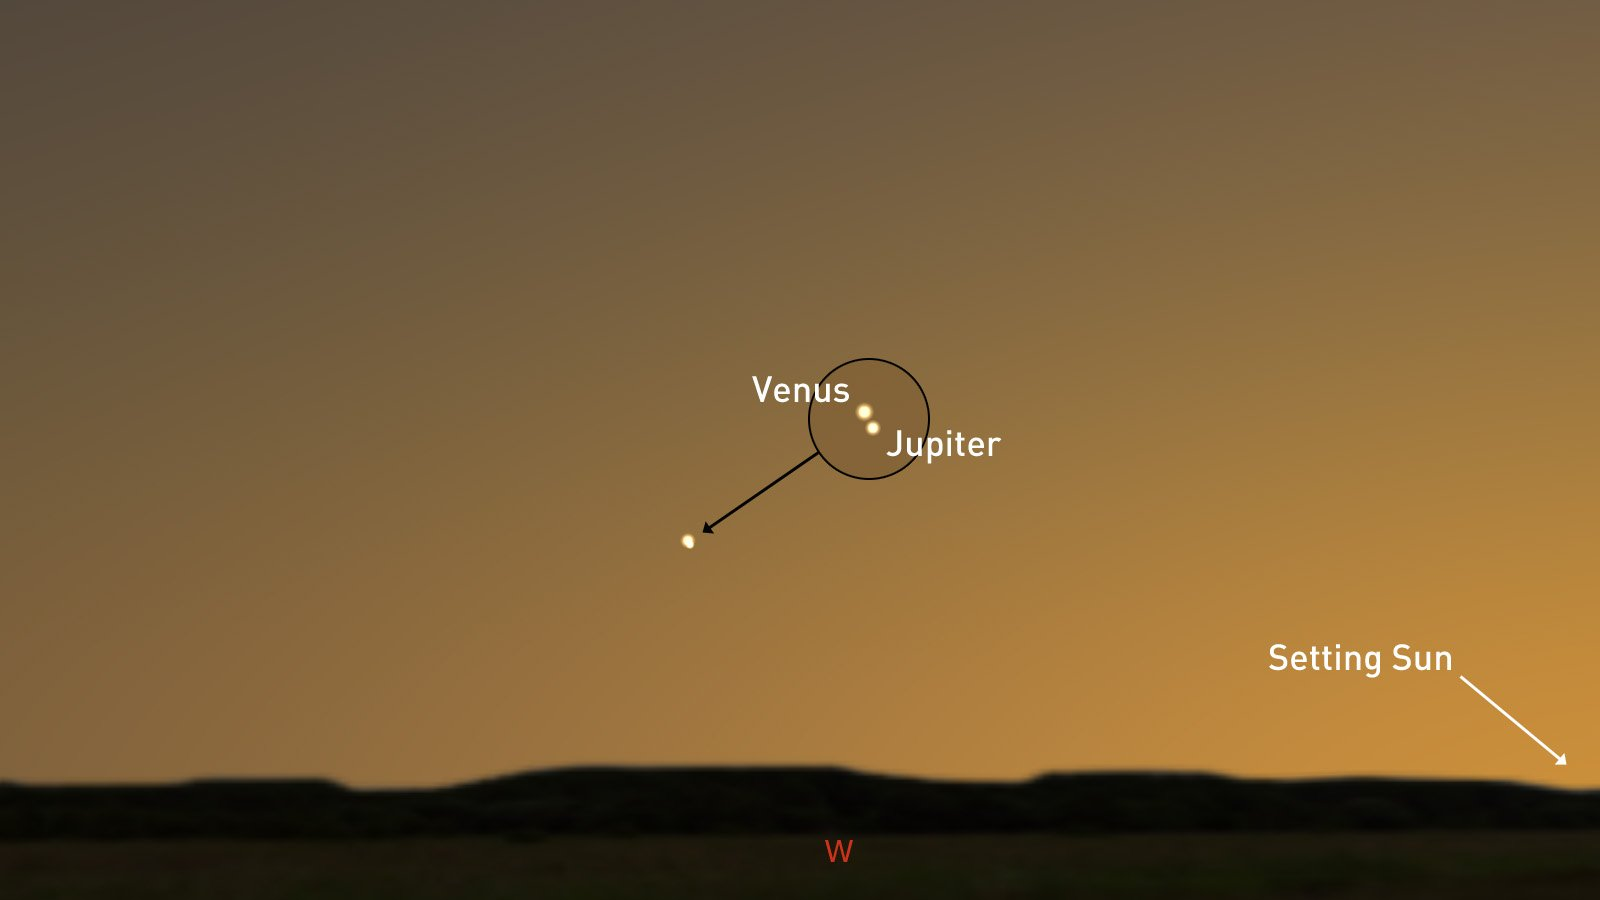 Venus-Jupiter Conjunction in August 2016 - Astrology & Astronomy 1